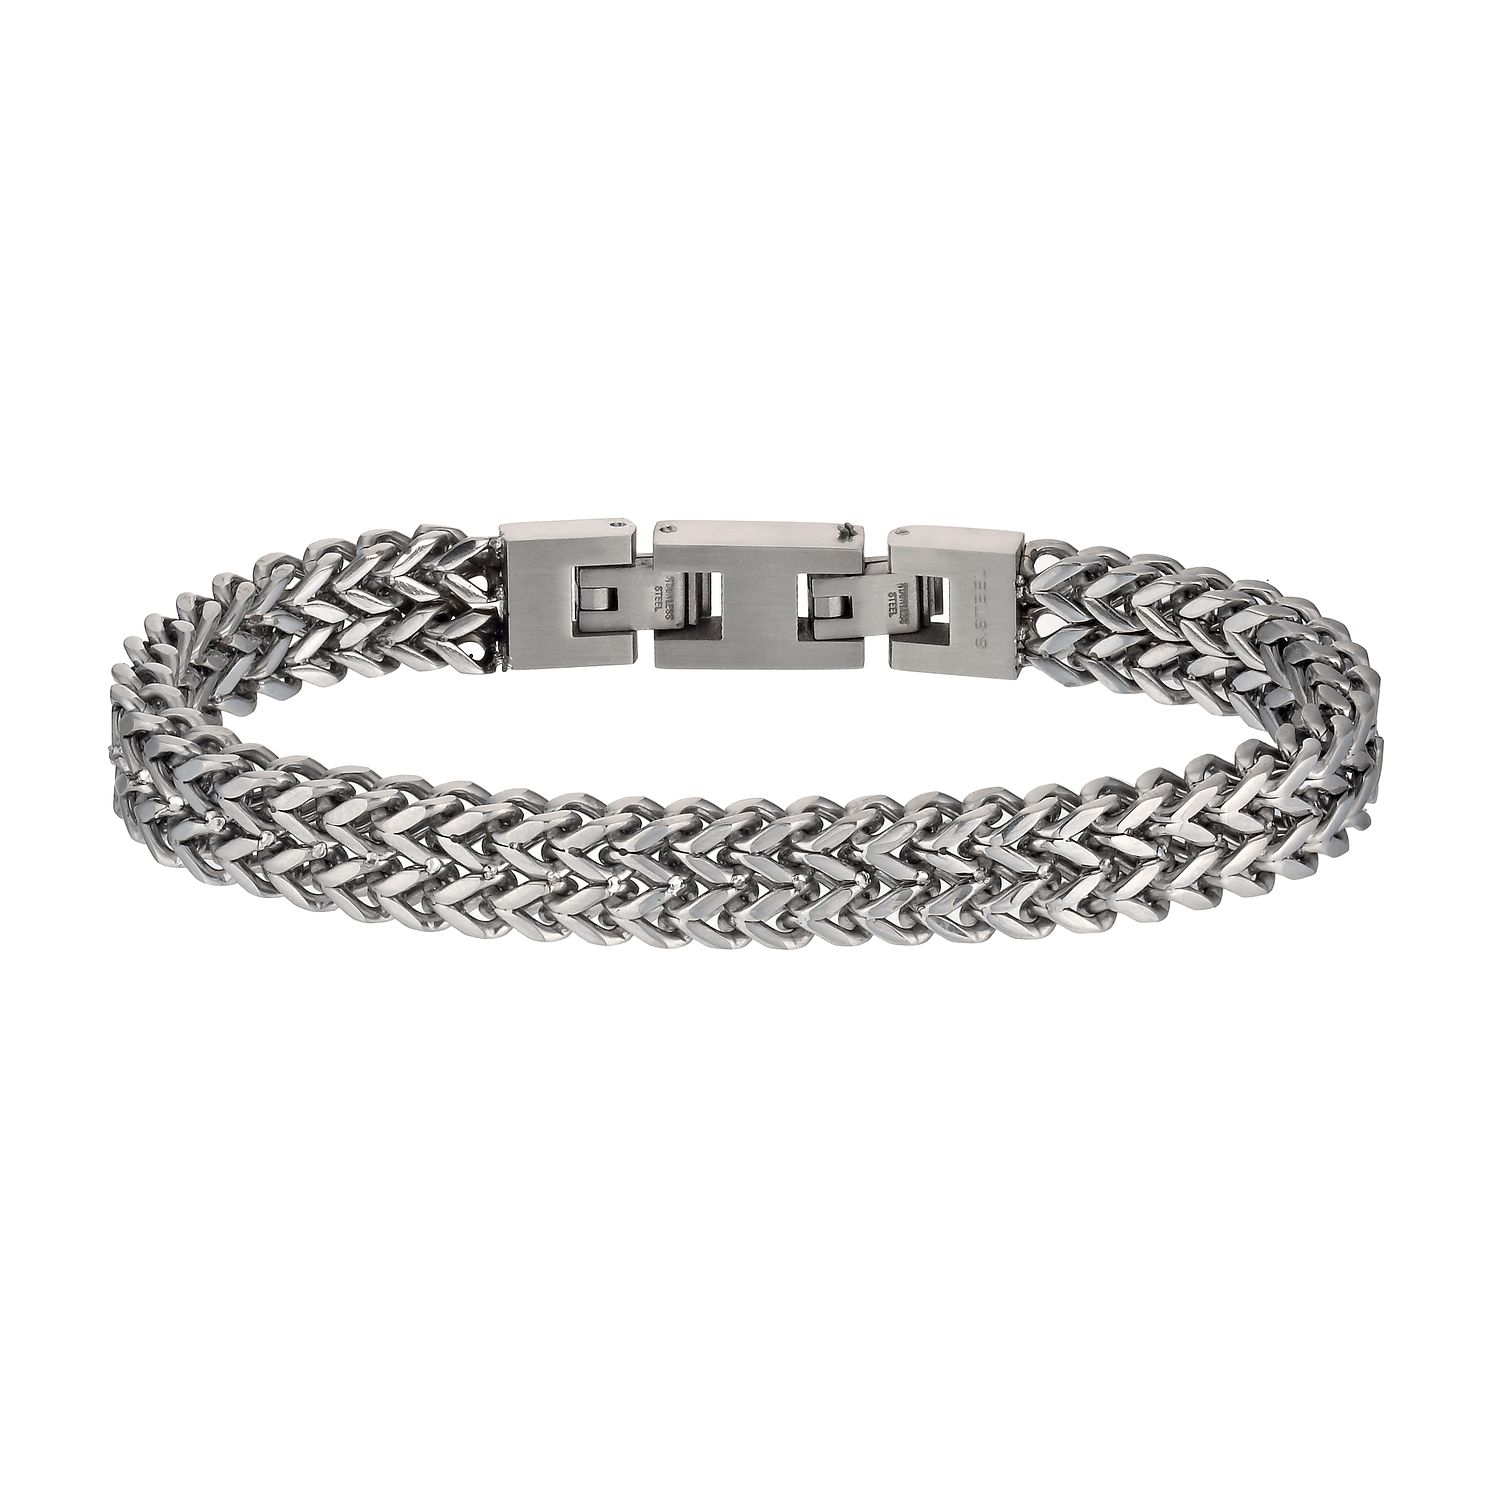 Stainless Steel Men's Bracelet - Product number 1335103